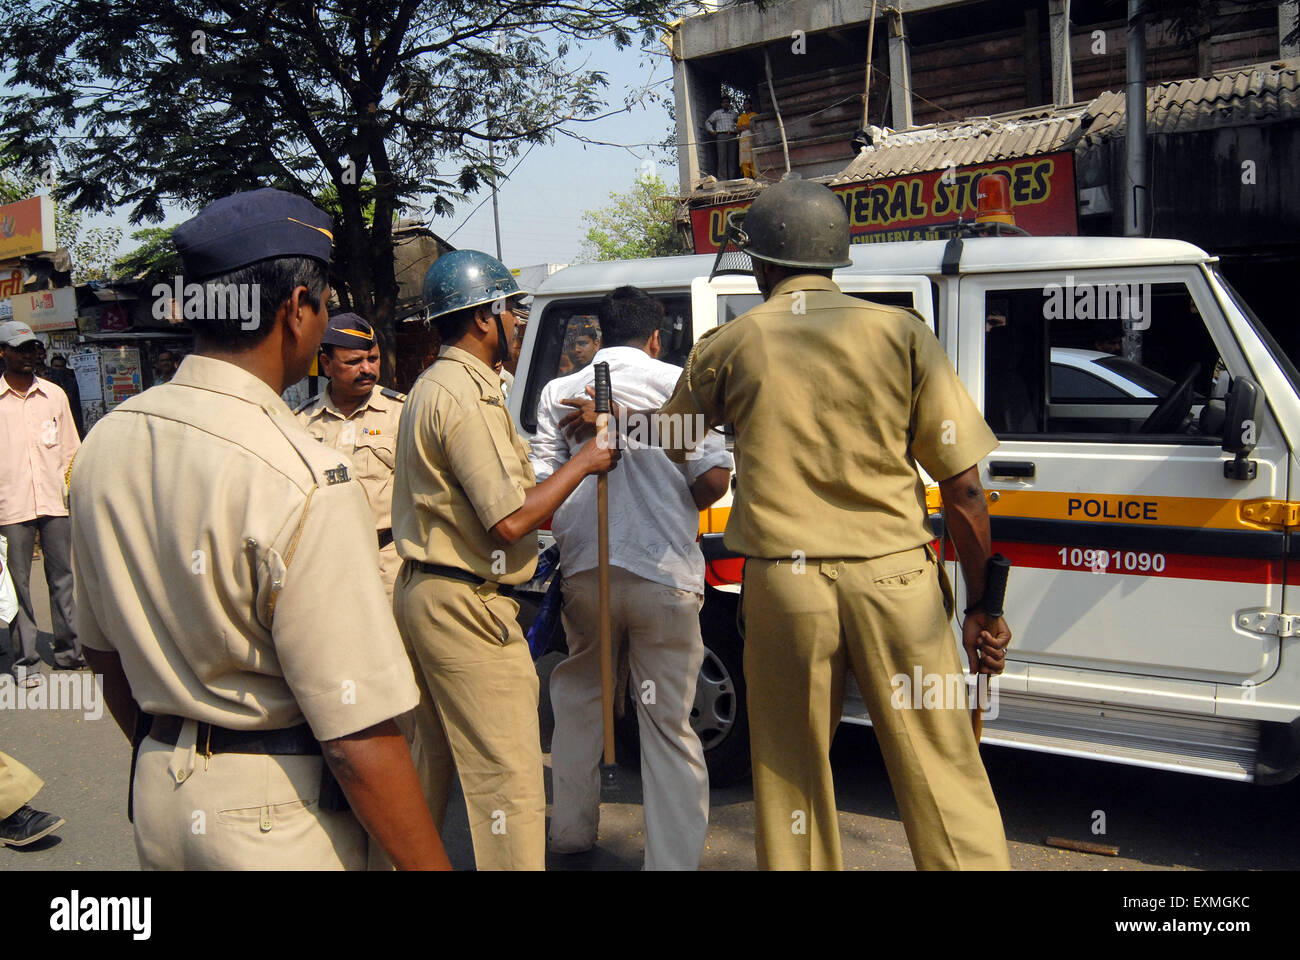 Police personnel charge lathi against a dalit rioter in Bhandup after the Dalit community resort to violent protests - Stock Image